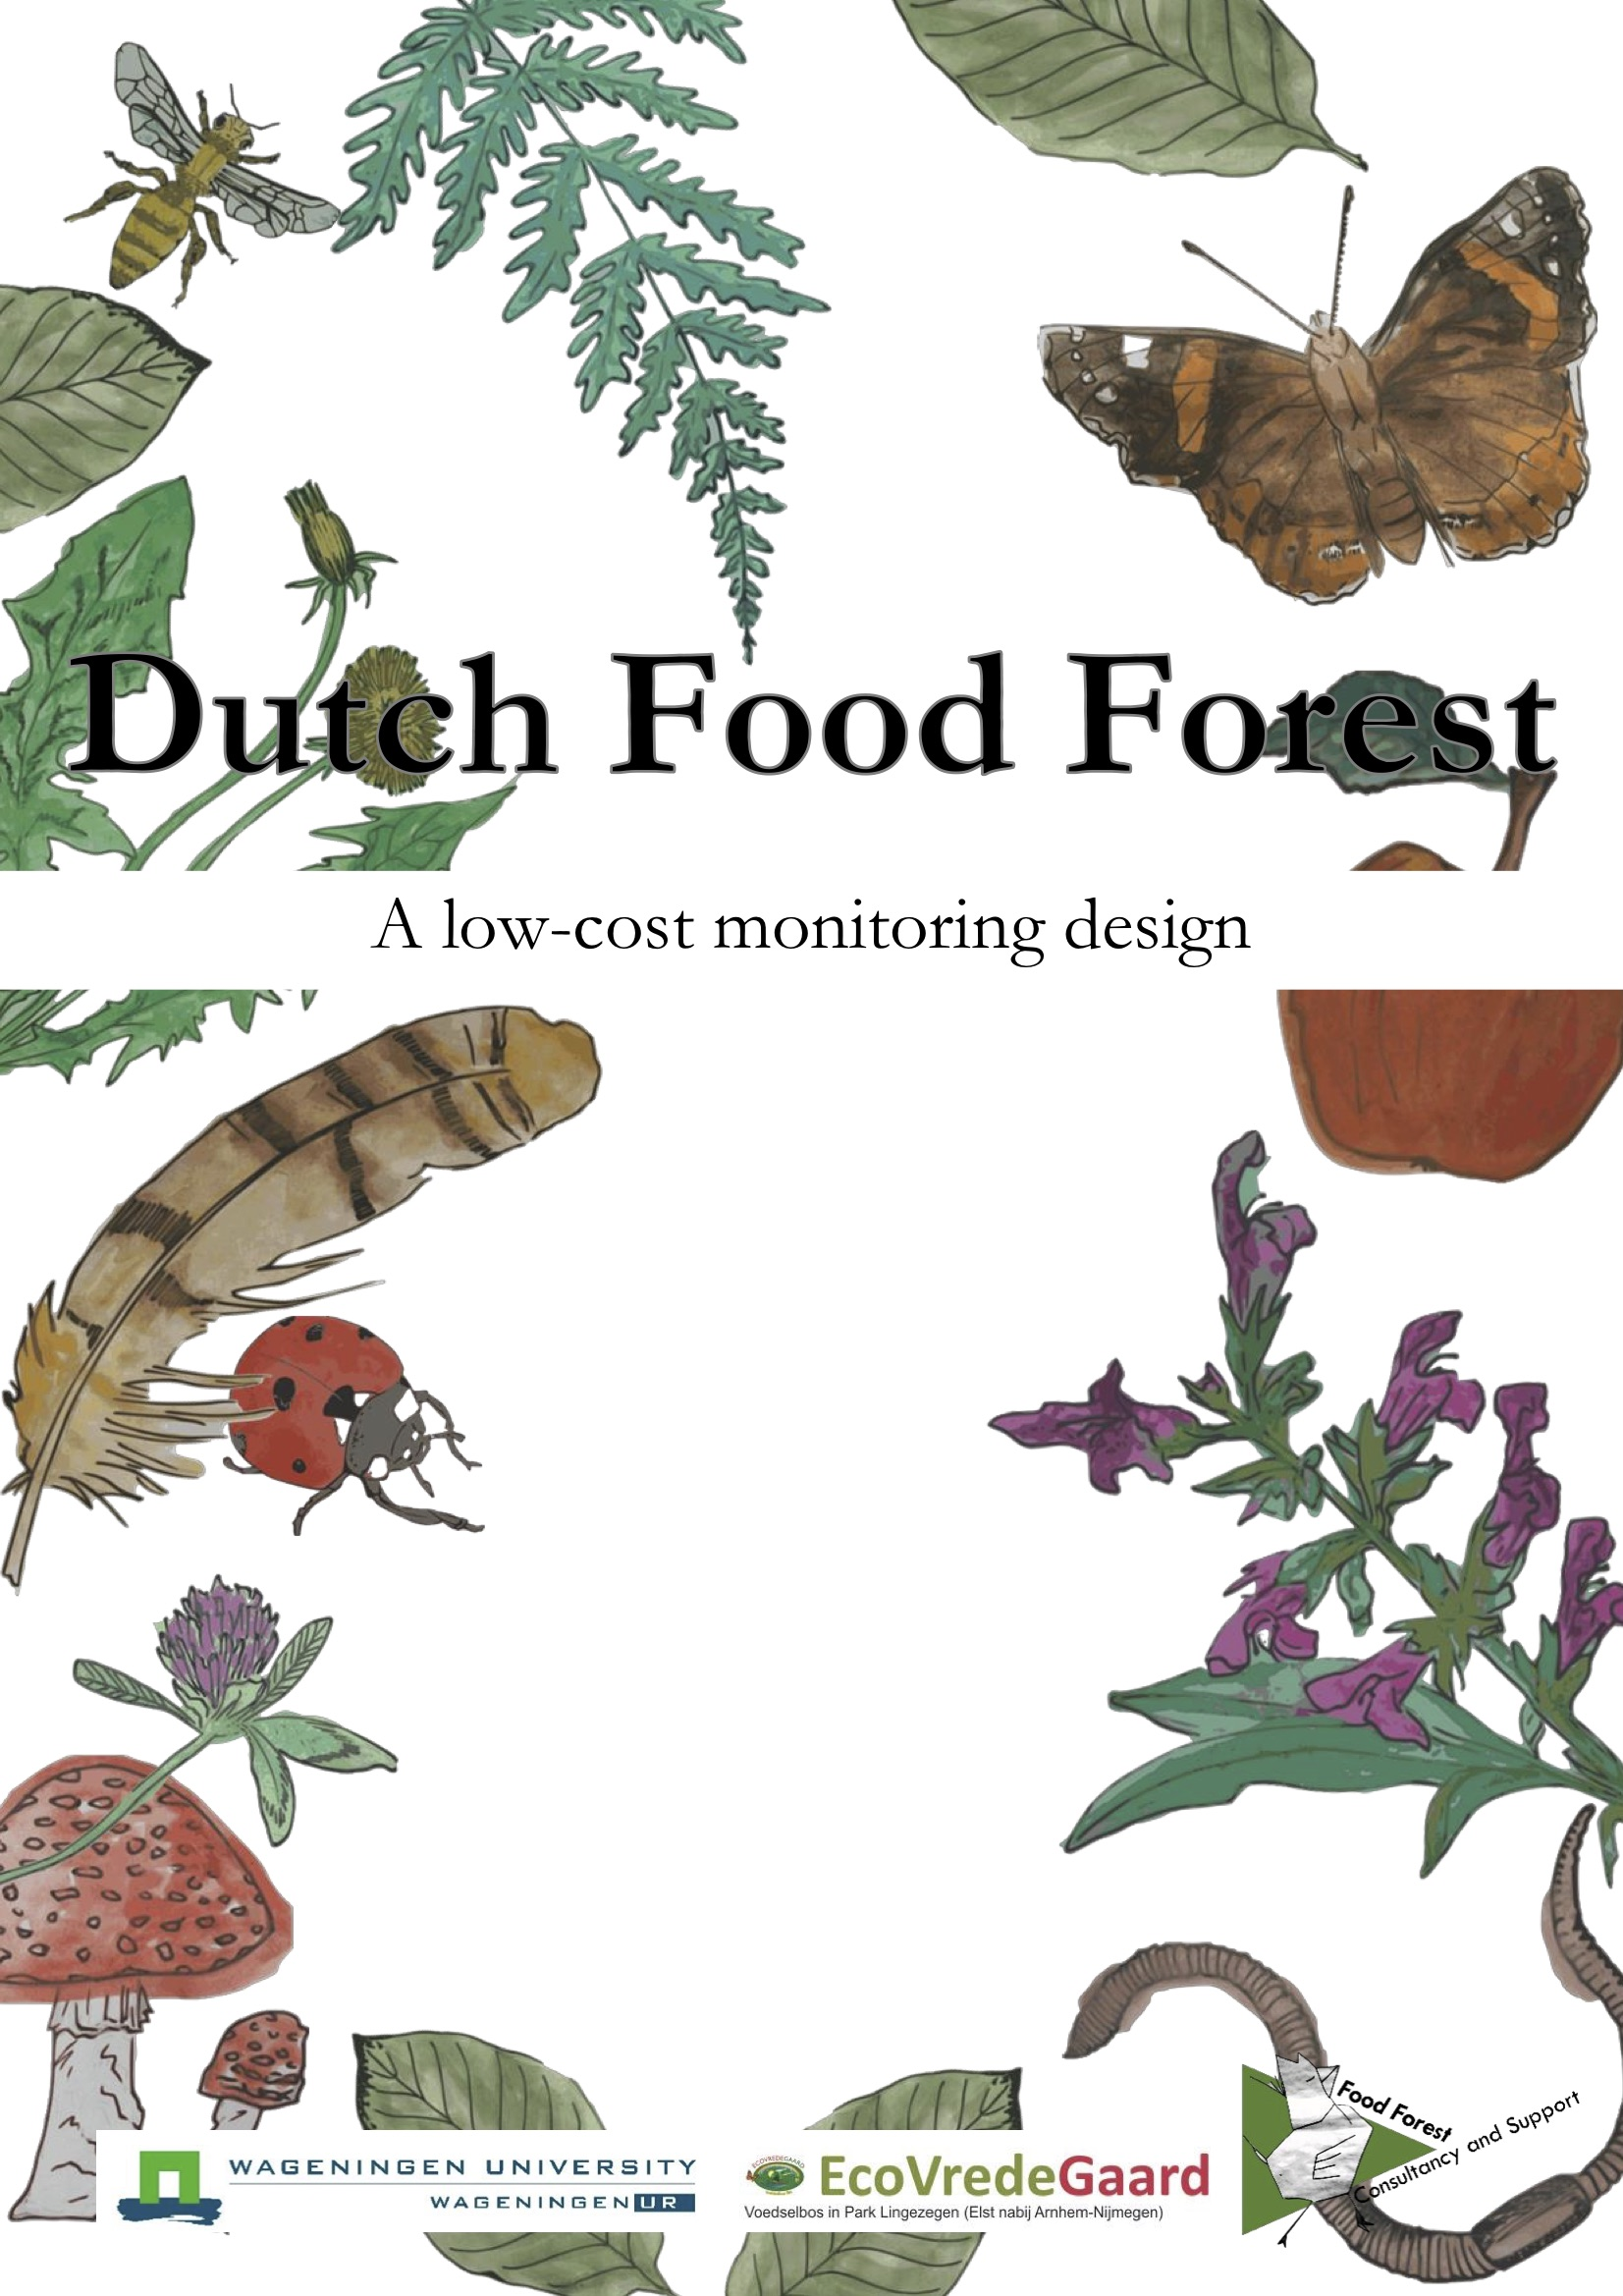 Dutch Food Forest: a low-cost monitoring design